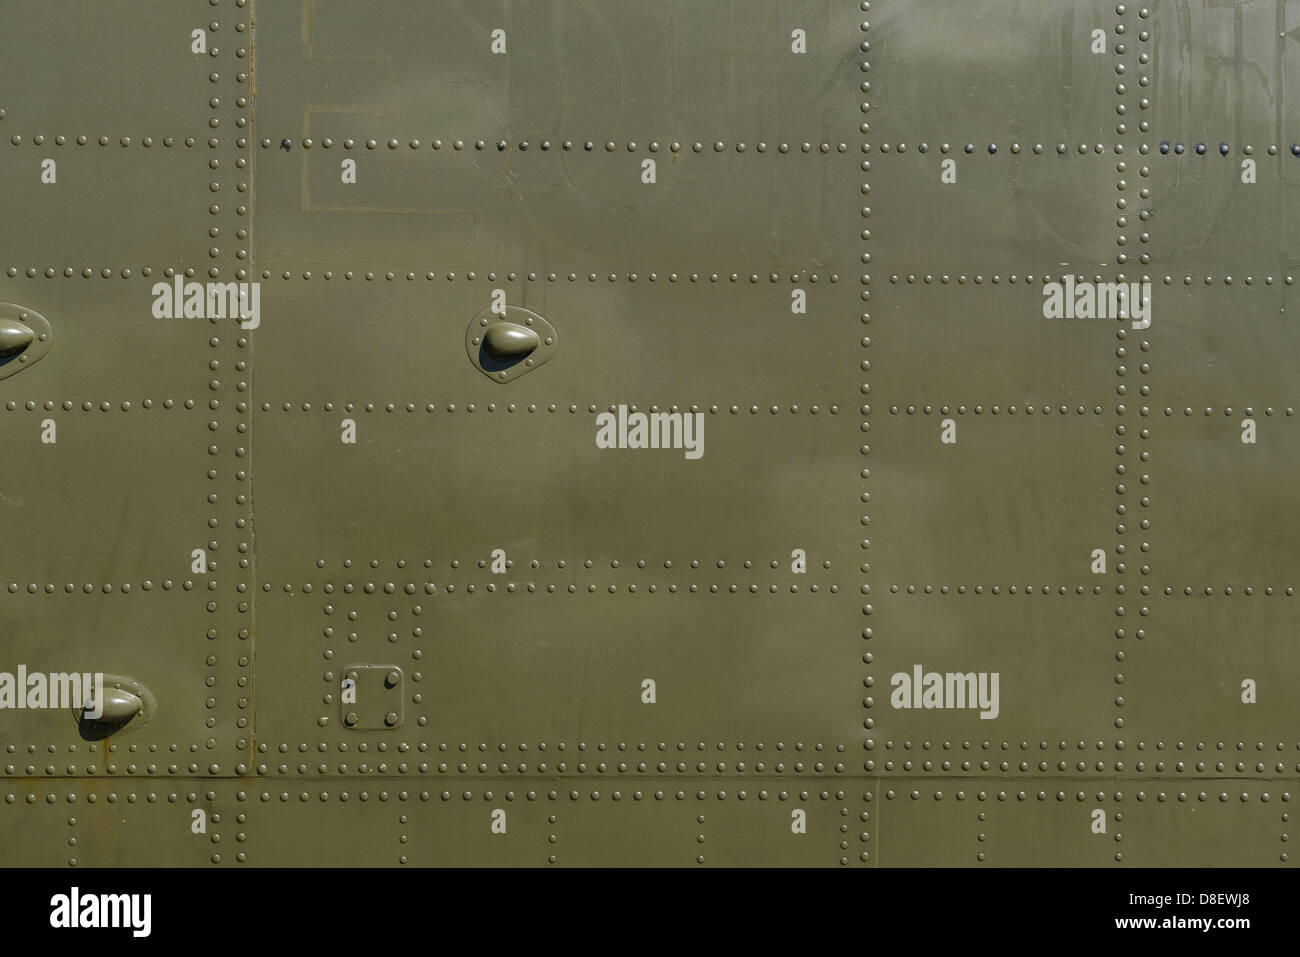 Military green metal and rivets detail - Stock Image